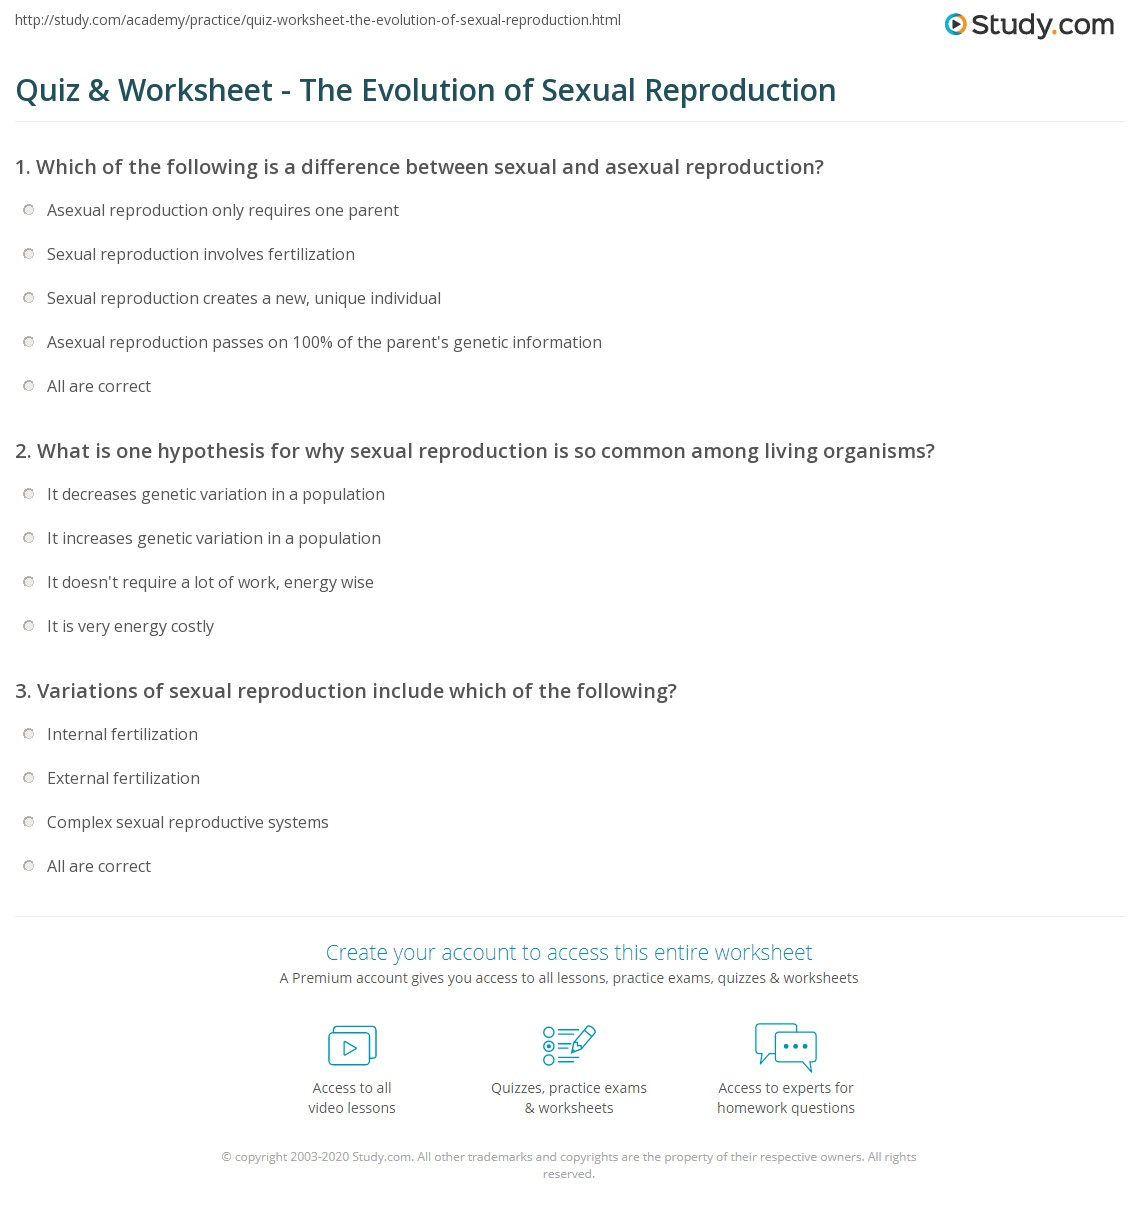 Quiz & Worksheet - The Evolution of Sexual Reproduction | Study.com